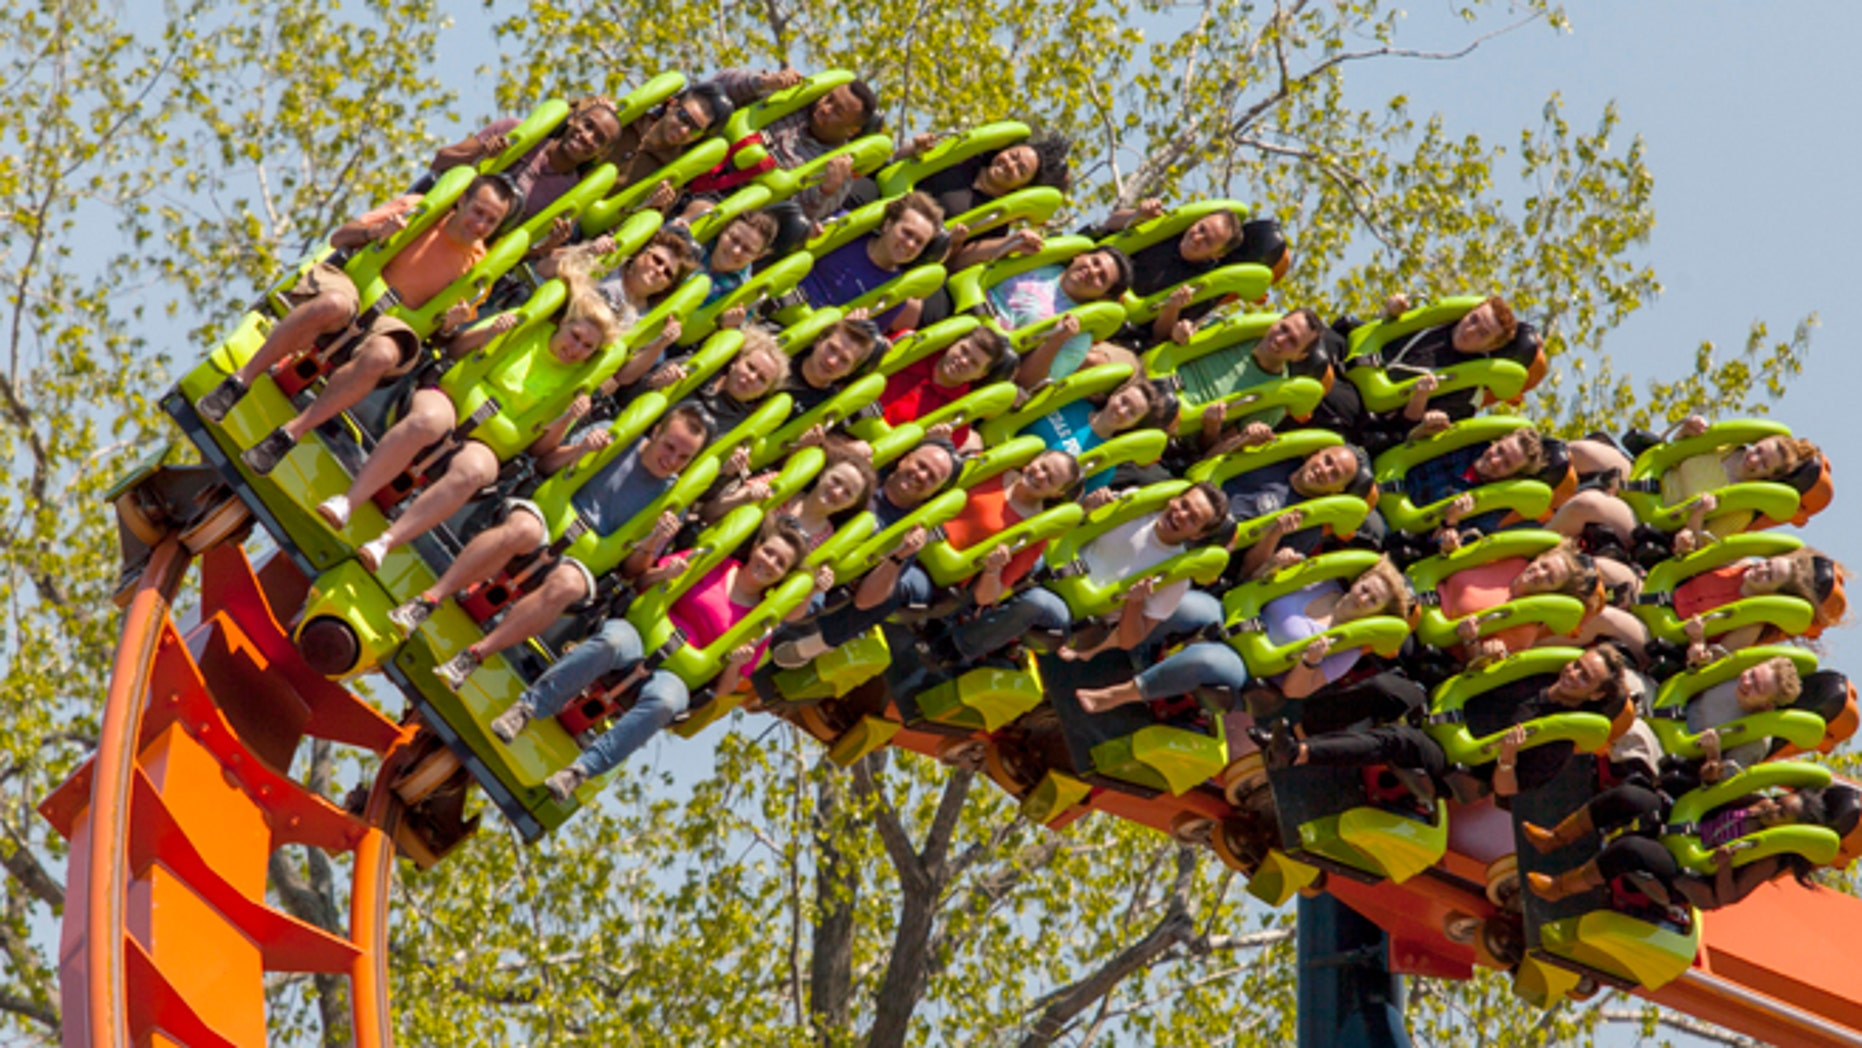 This photo provided by Cedar Point in Sandusky, Ohio, shows the theme park's new Rougarou roller coaster. The floorless coaster has a werewolf theme. It's one of a number of new attractions at theme parks around the country this summer. (AP Photo/Cedar Point)